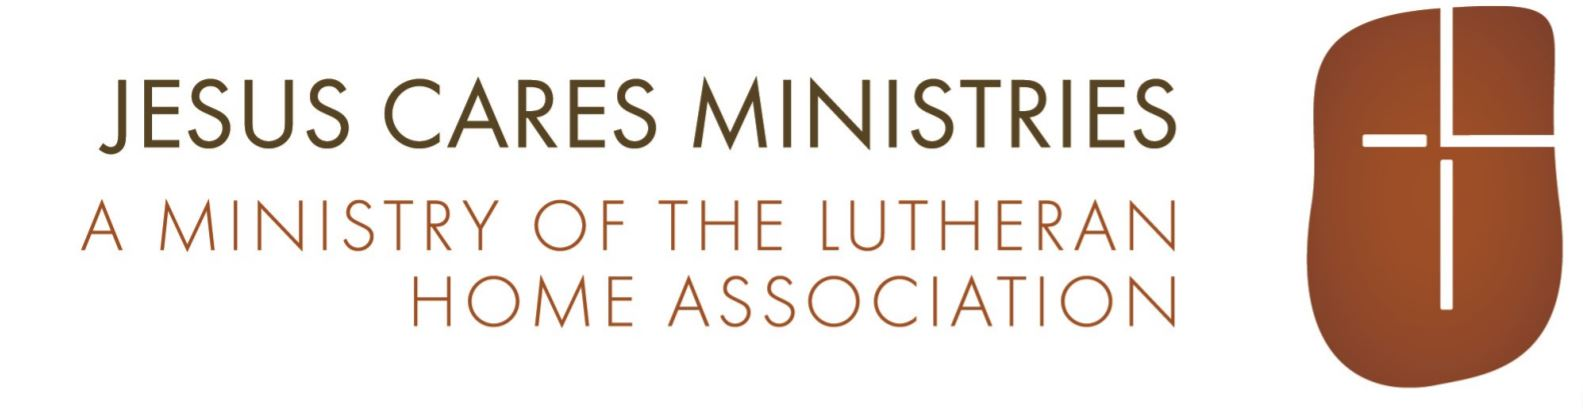 Our program is partnered with Jesus Cares Ministries (JCM), a ministry of the Lutheran Home Association (THLA). TLHA is a not-for-profit ministry dedicated to providing for the spiritual, physical and emotional needs of people in their care. Find out more about JCM and TLHA at  http://www.tlha.org/ .